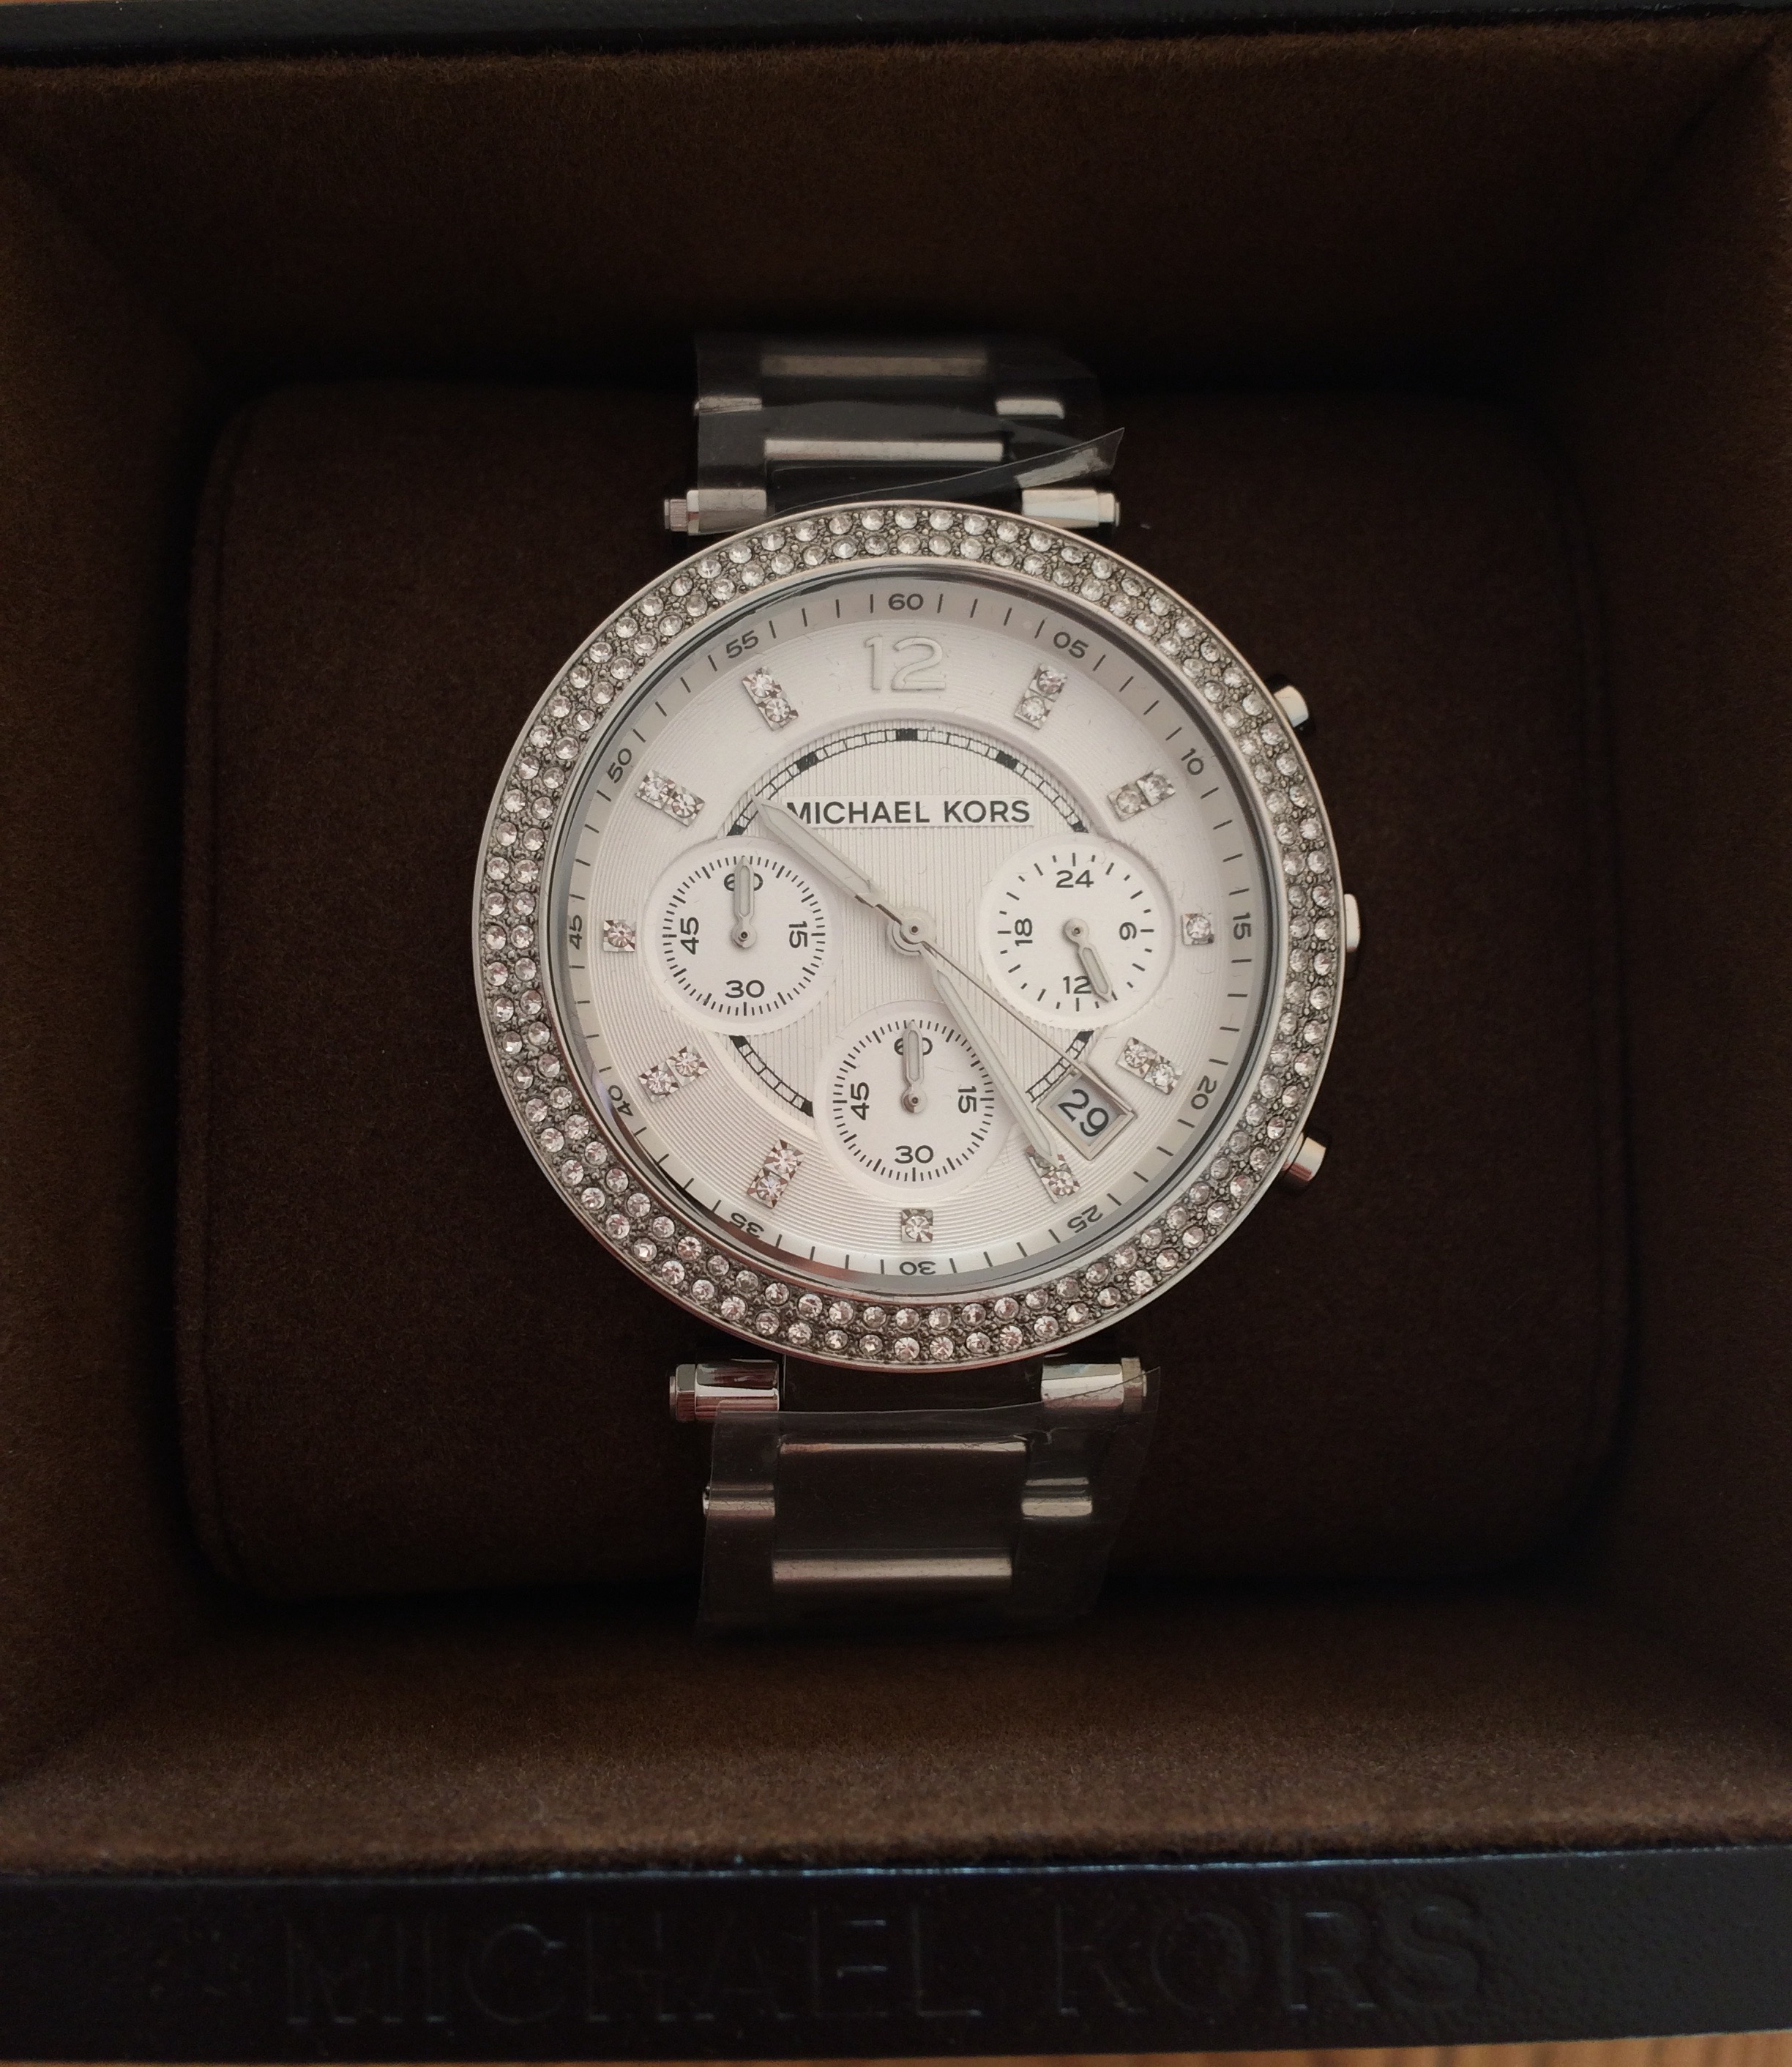 8c21696c5754 Bought this watch as a 16th birthday gift for my daughter she had been  wanting it for a while after days searching the web for the best deal and  site ...